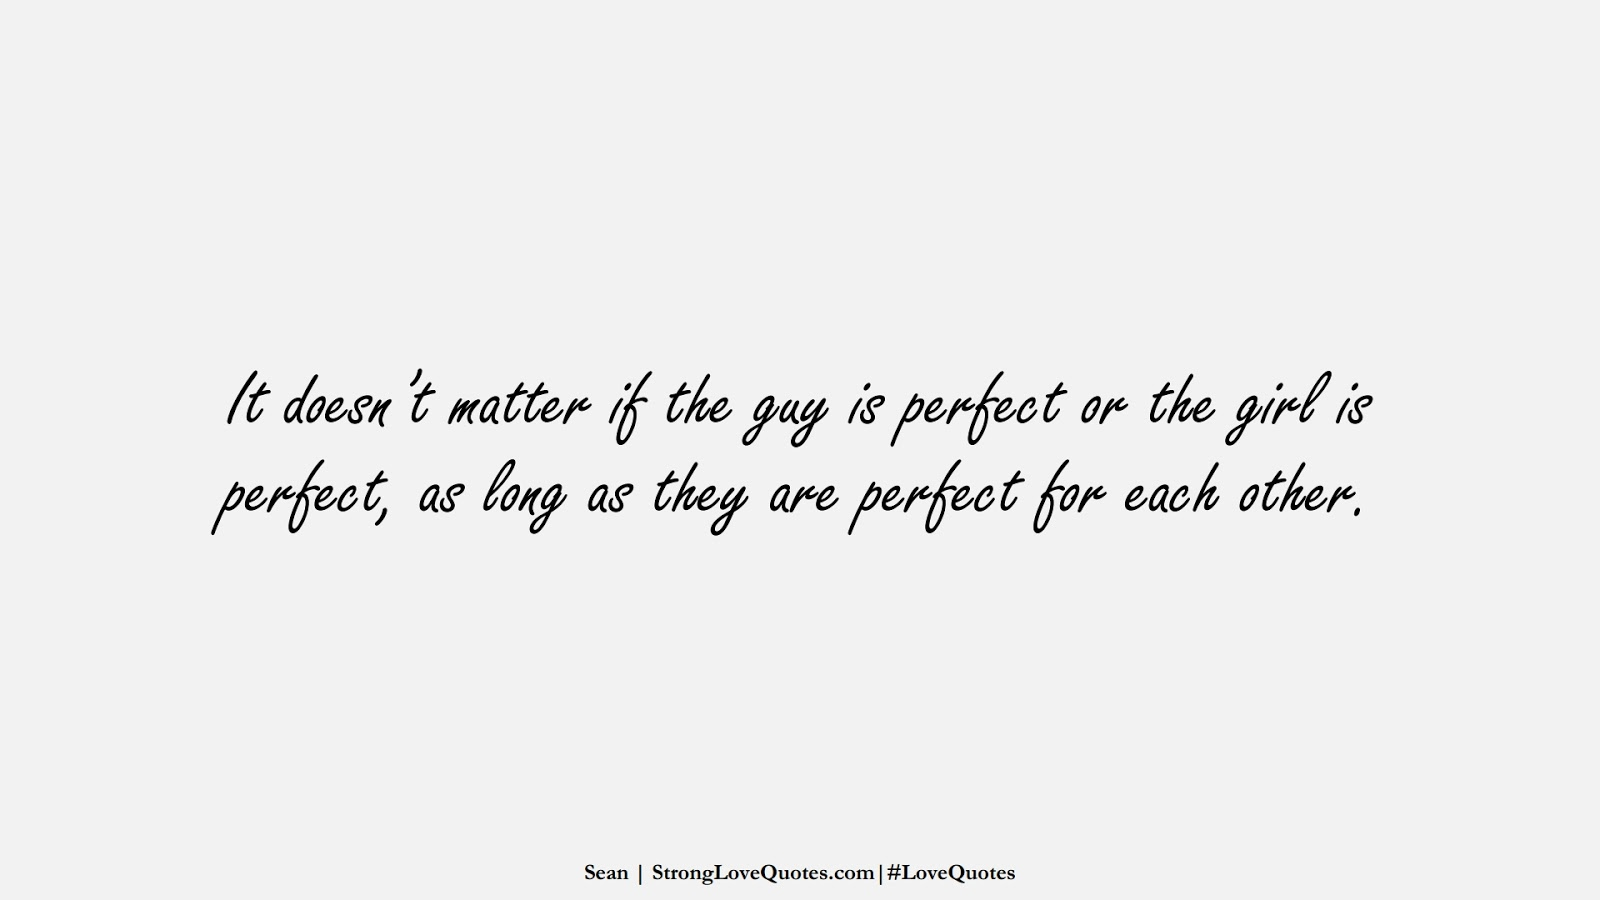 It doesn't matter if the guy is perfect or the girl is perfect, as long as they are perfect for each other. (Sean);  #LoveQuotes